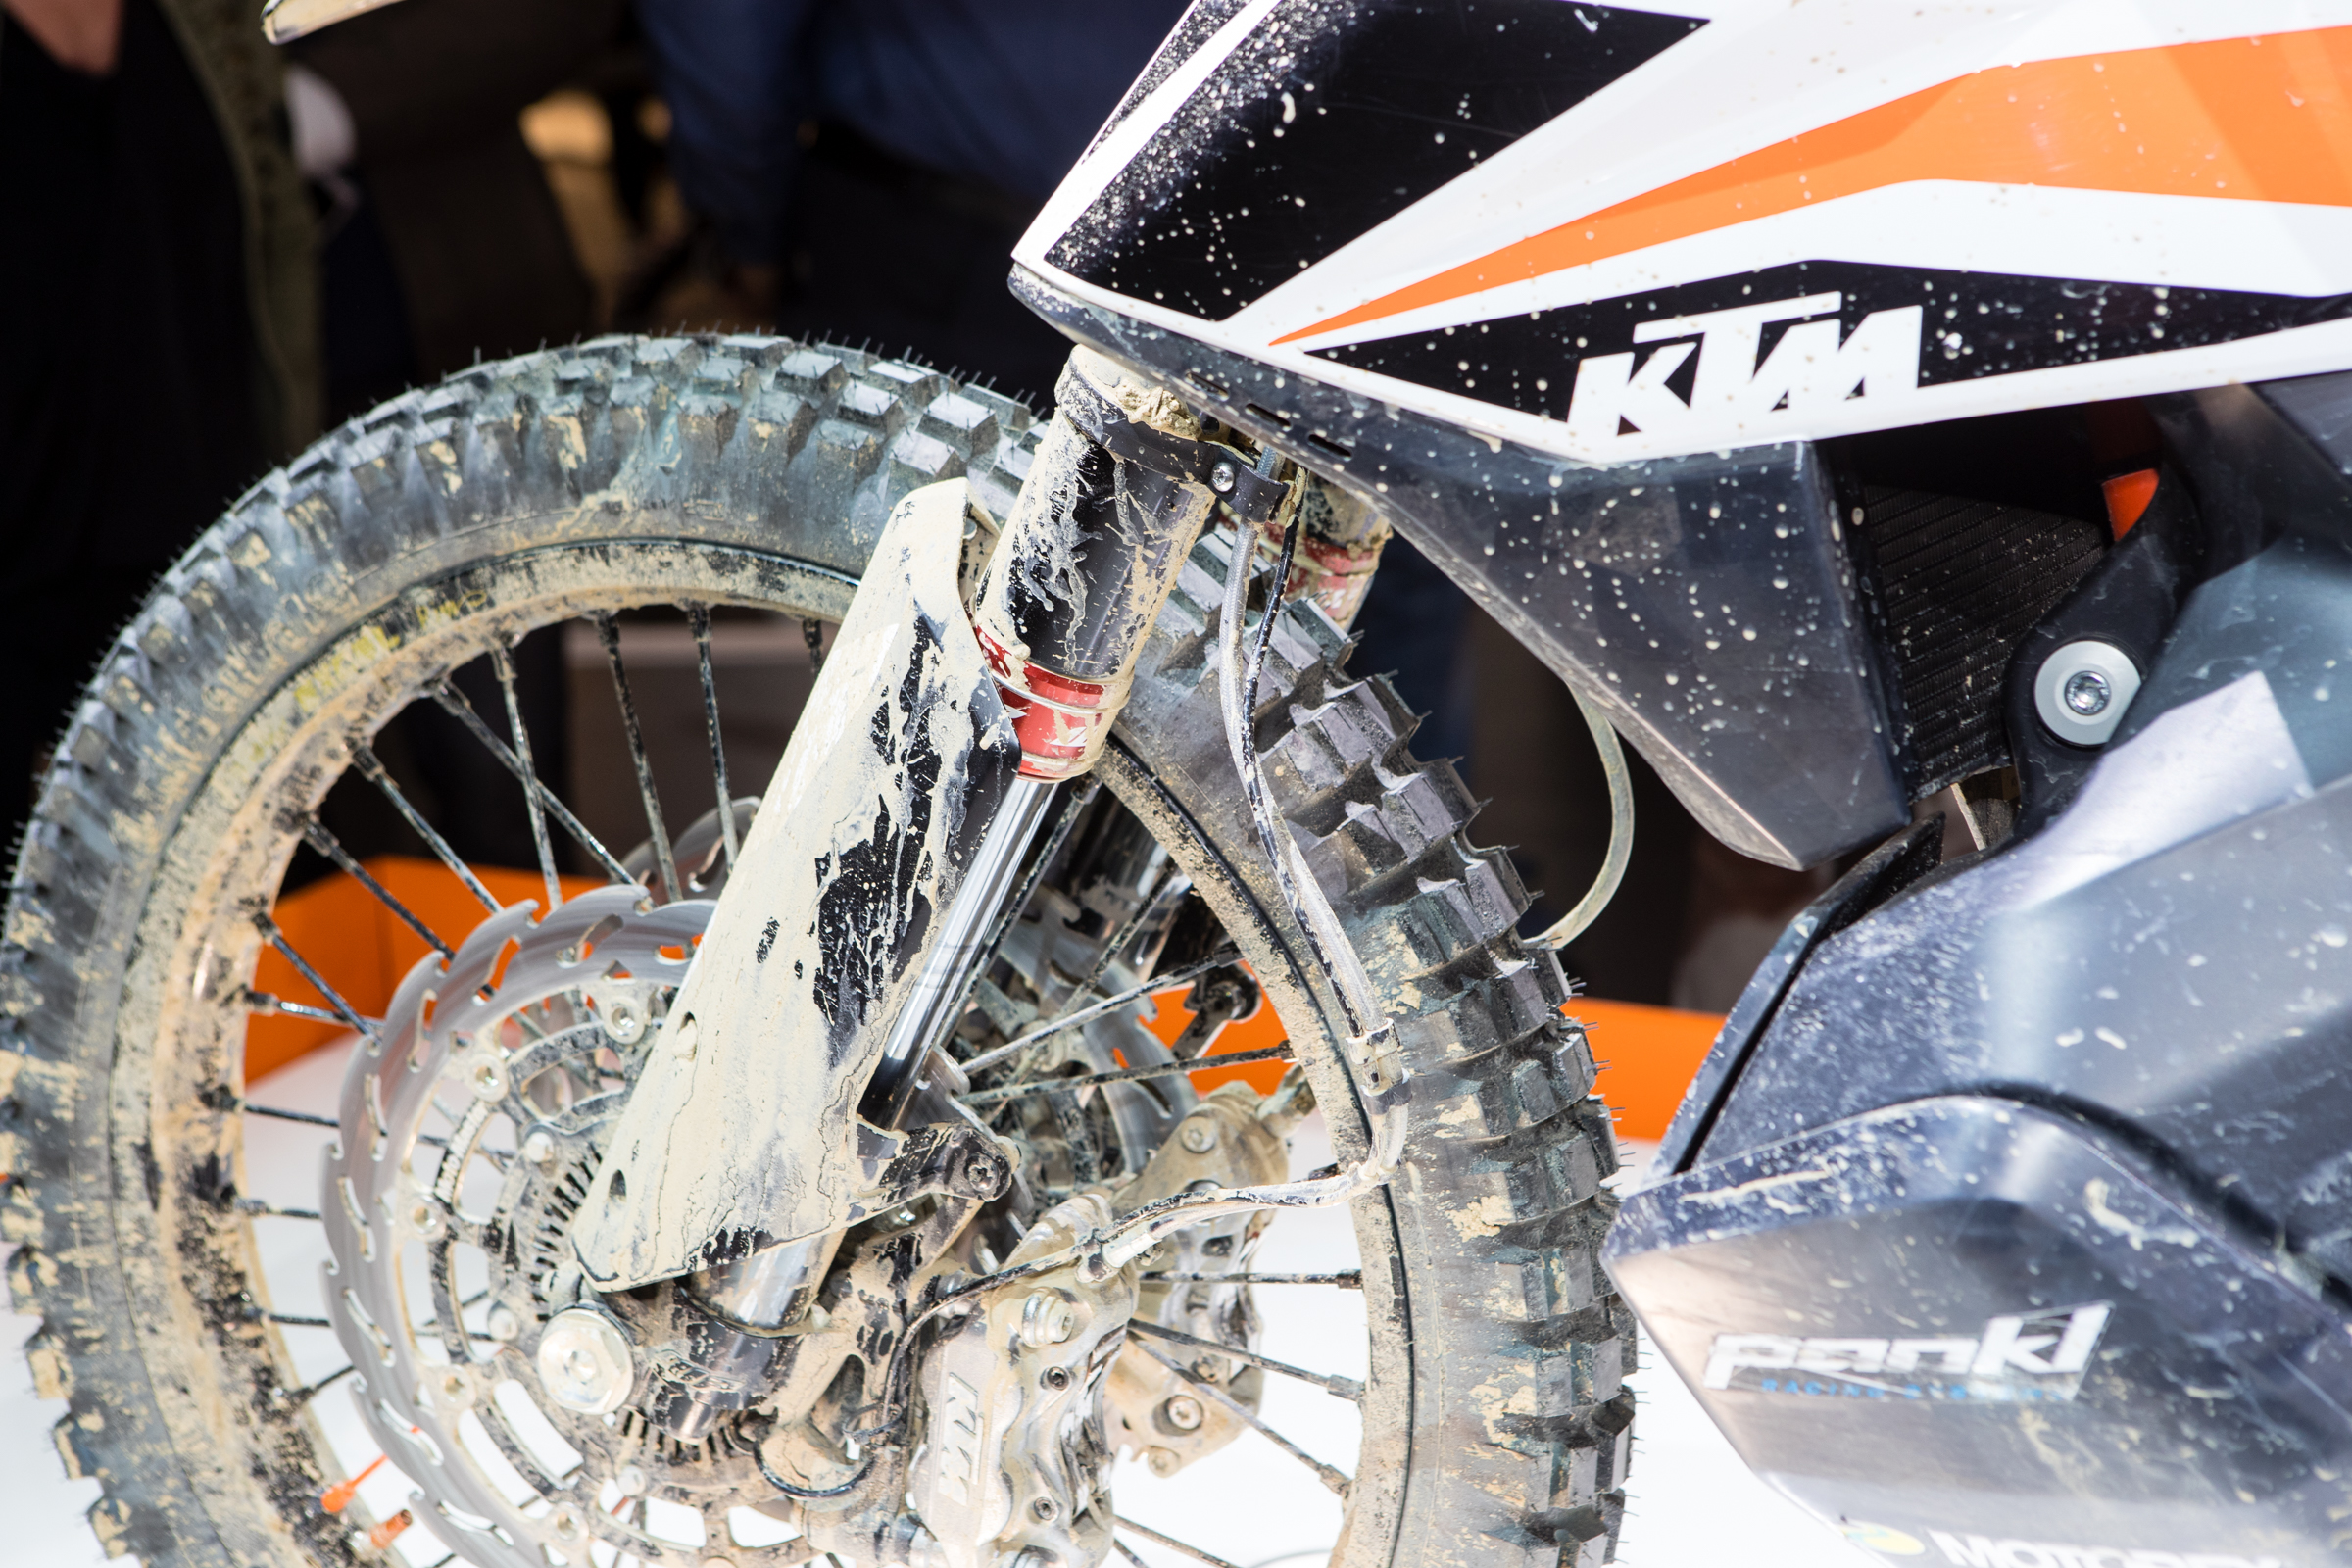 High end components, such as WP Cone Valve 48 motocross forks are present and although it has dual calipers, the rotors look smaller and more manageable for dirt use.